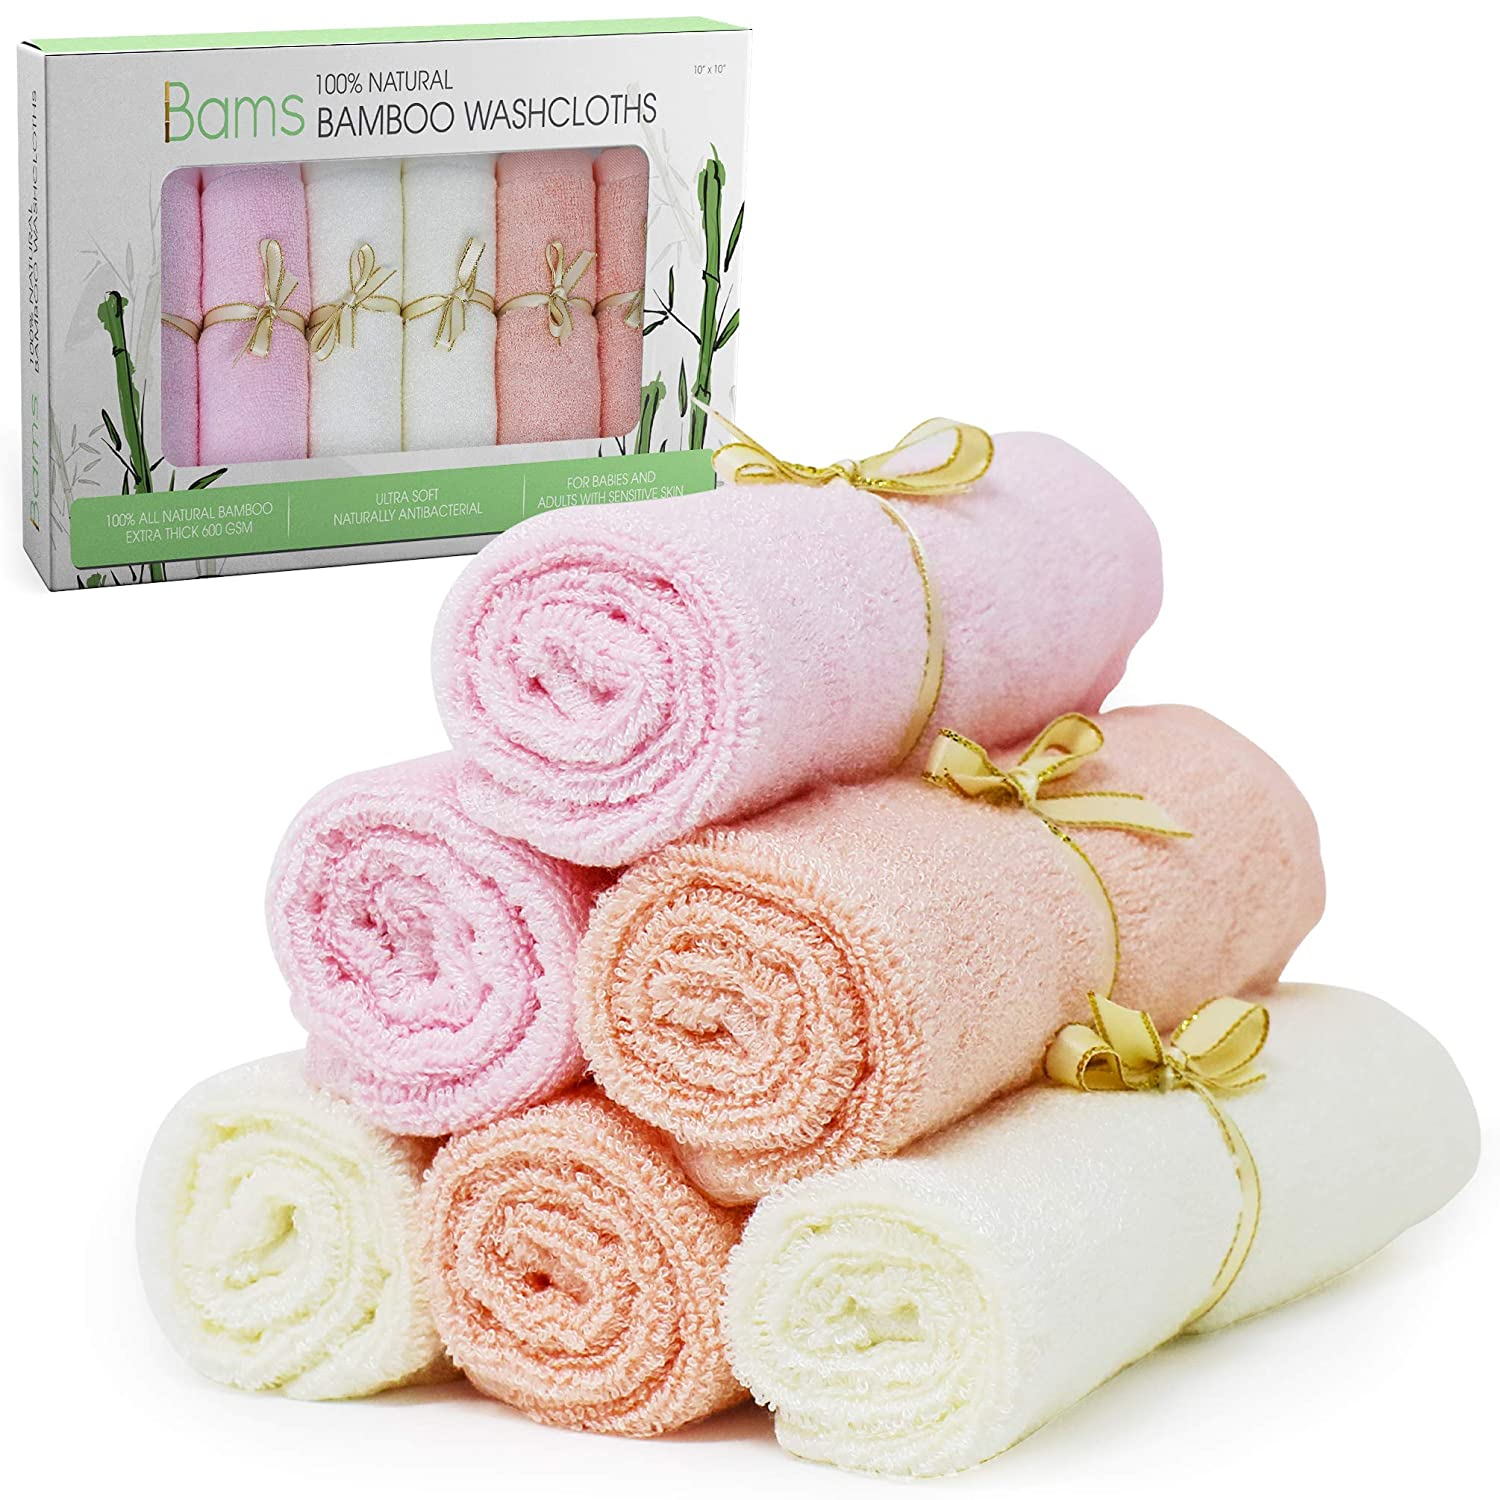 BAMS Luxury 100% Bamboo Baby Washcloths- 2X Thicker Extra Soft Face Wash Cloth Wipes Towels for Babies, Newborn, Infant, Adults with Sensitive Skin, Free Laundry Bag